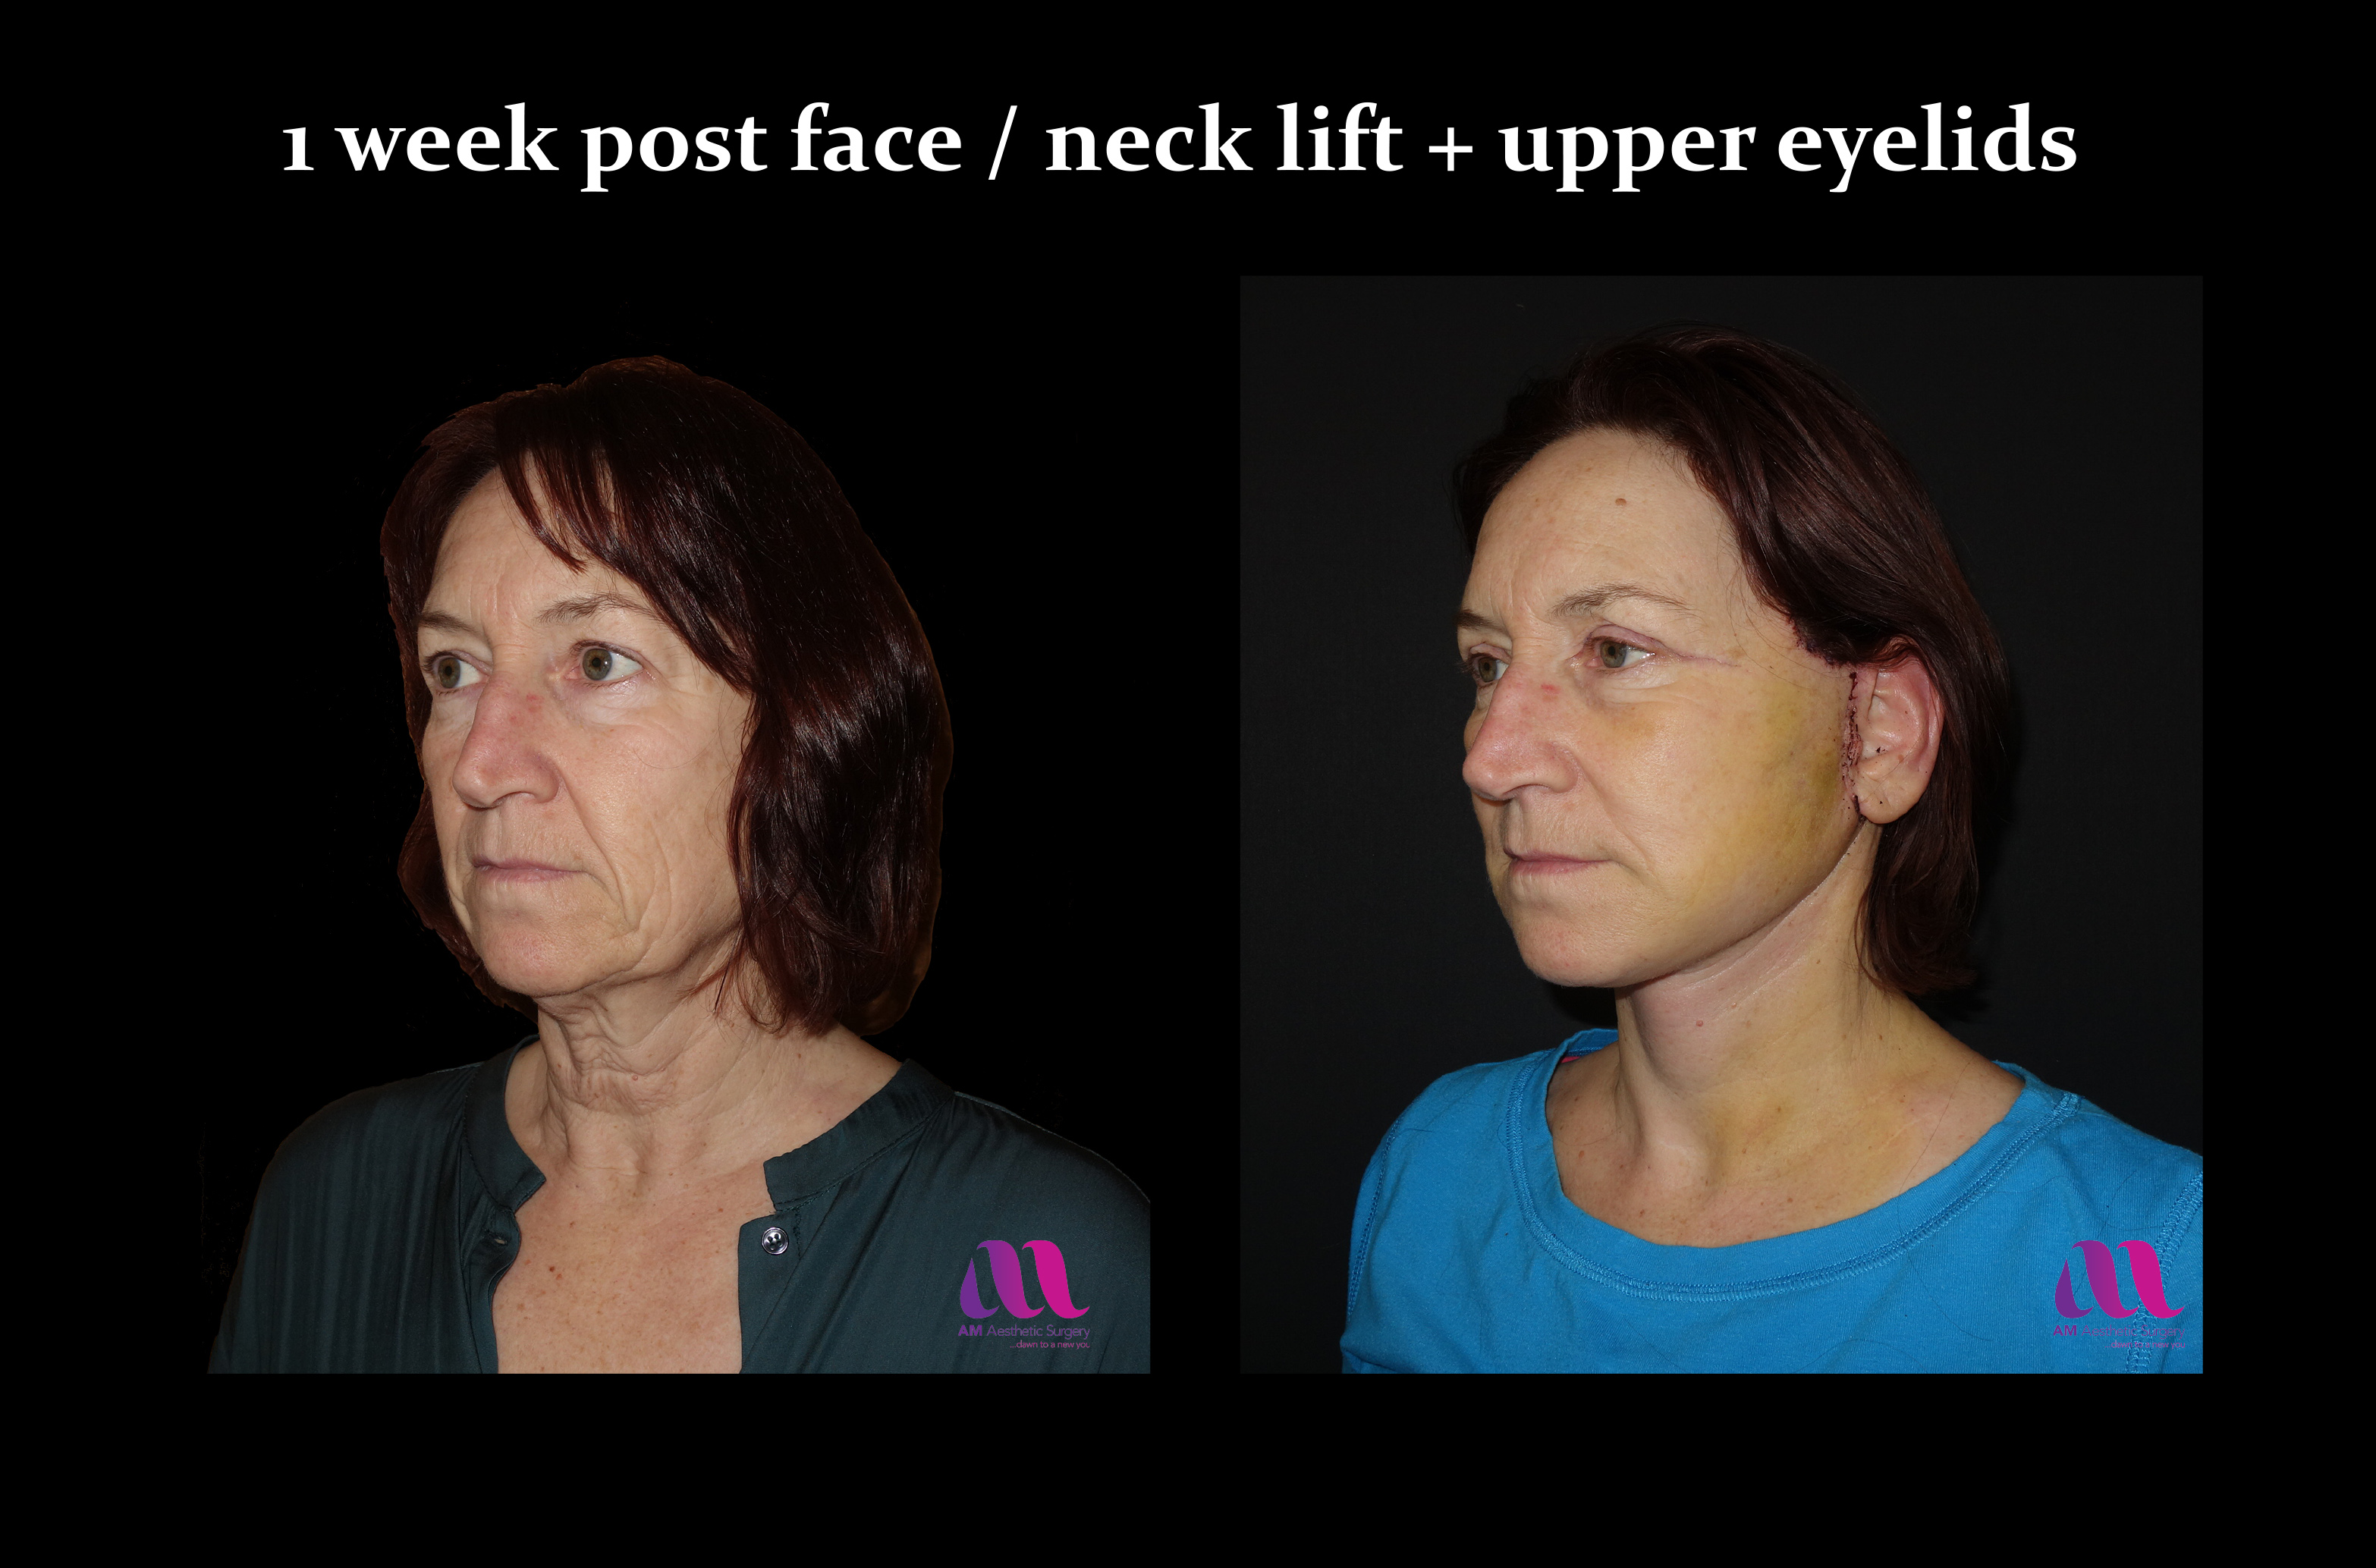 Face Lift +Upp Eyelids13b